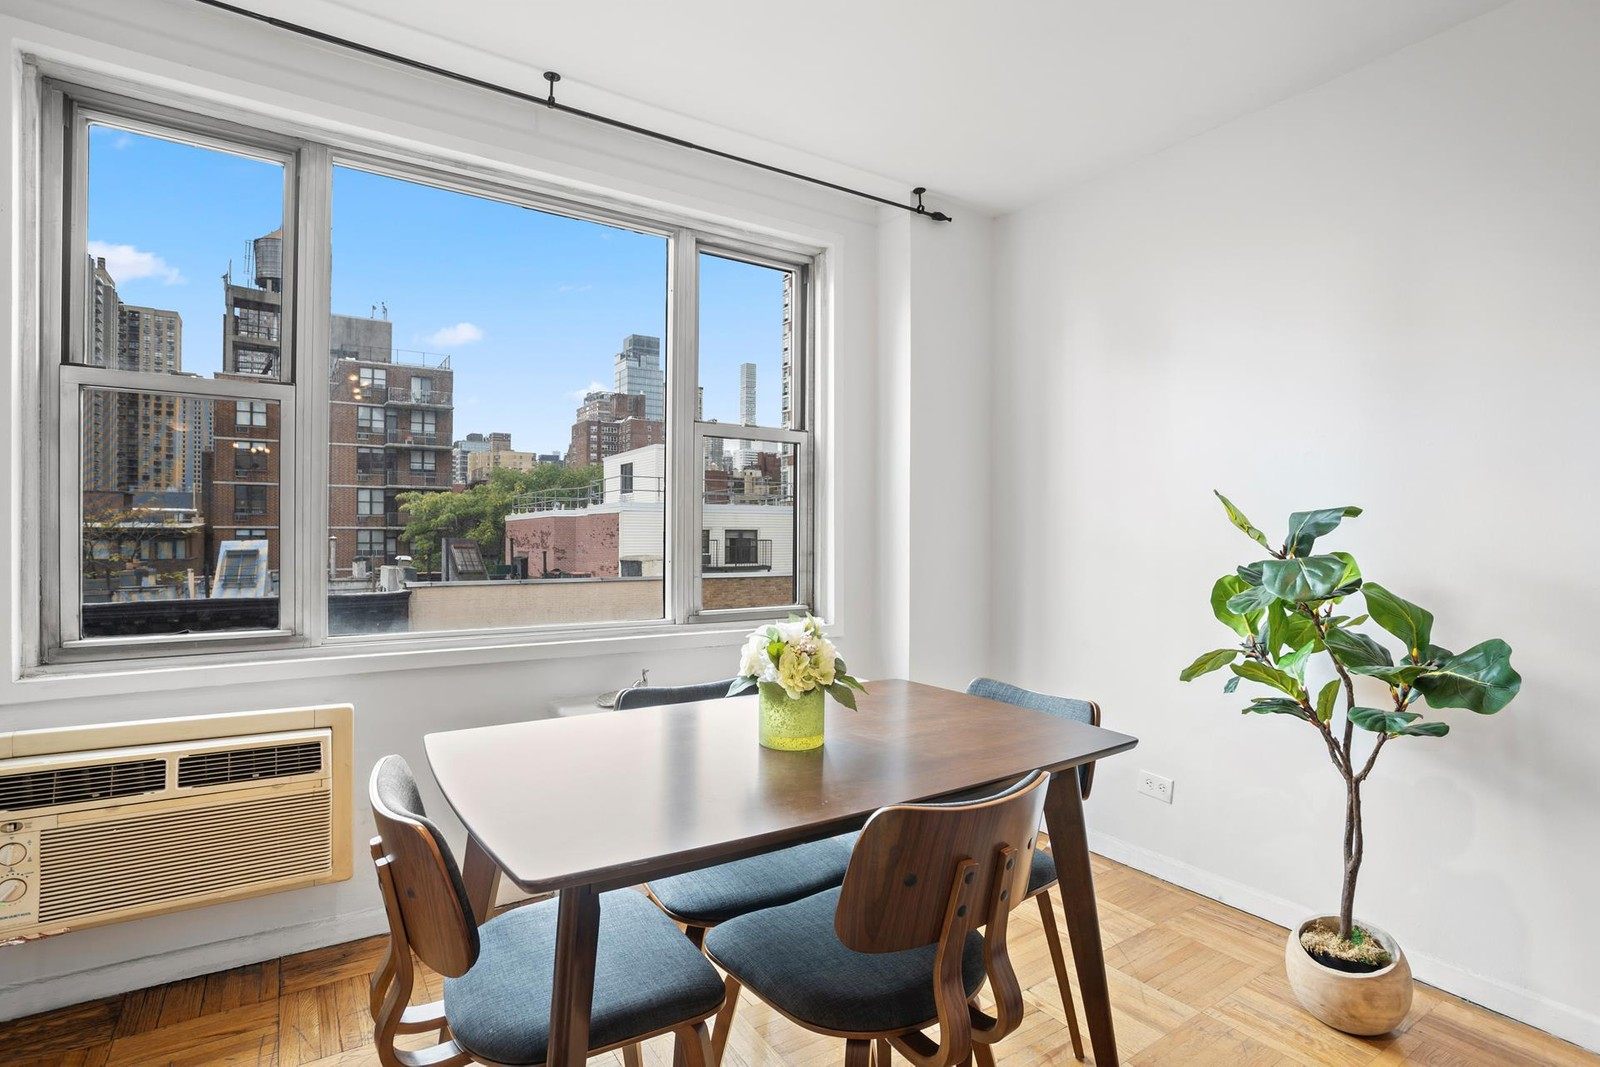 Additional photo for property listing at Pembroke, 435 East 77th St, 8e Upper East Side, New York, NY 10021